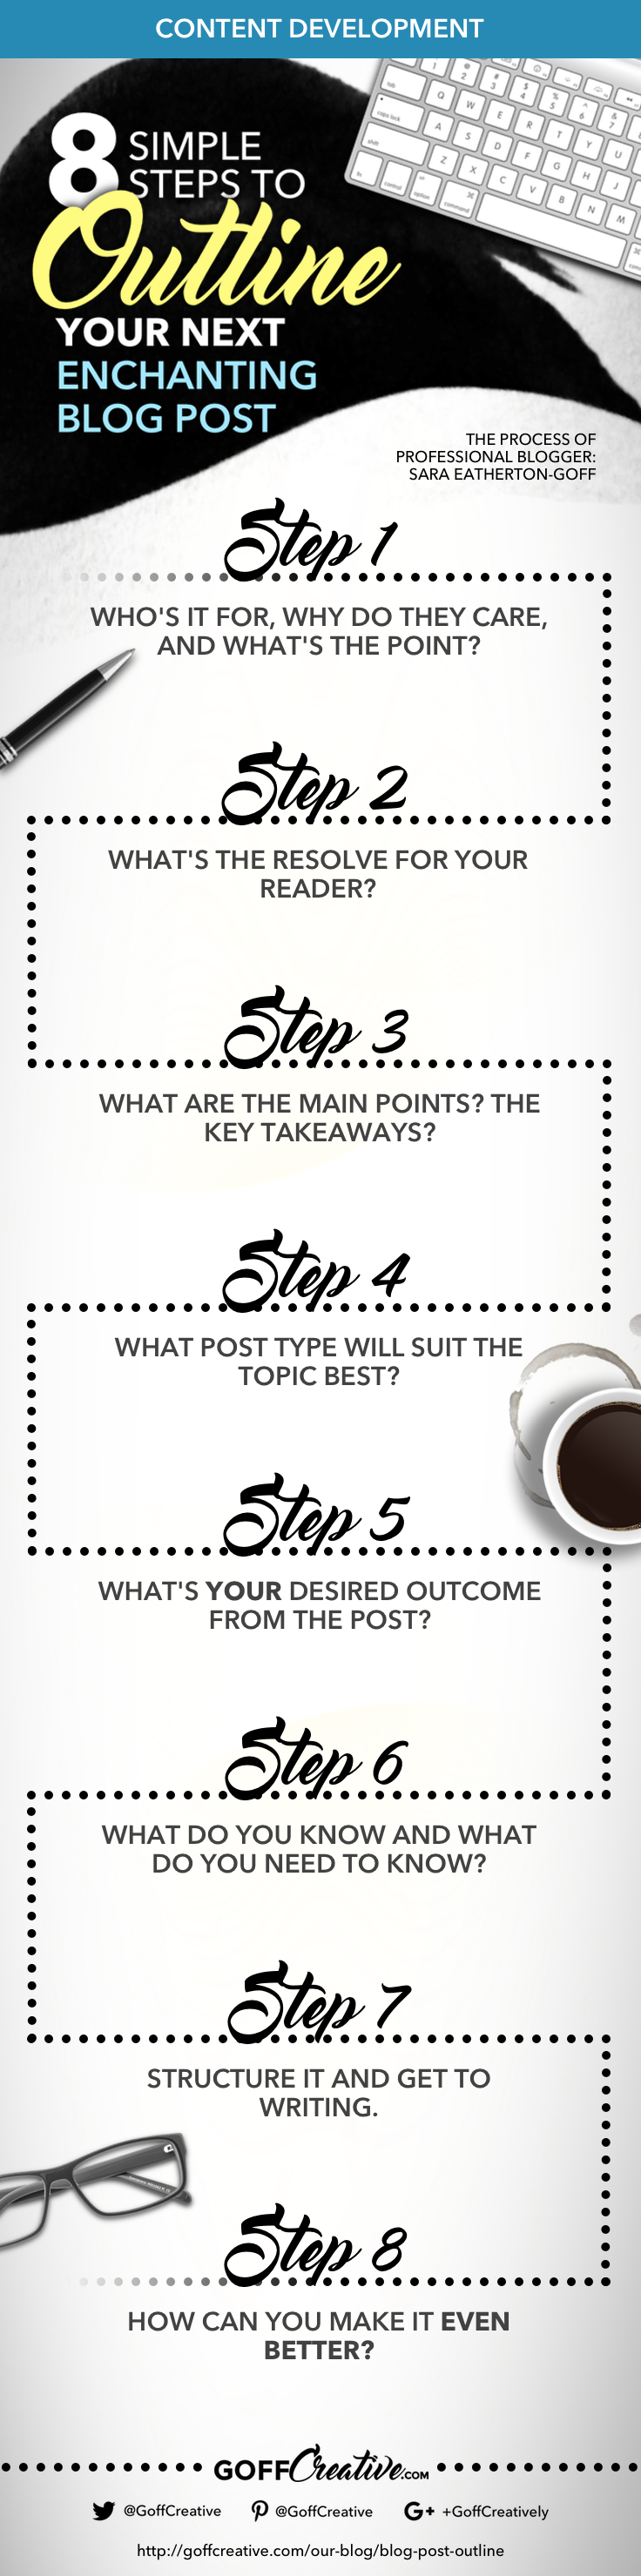 my 8 simple steps to creating an outline for every blog post.